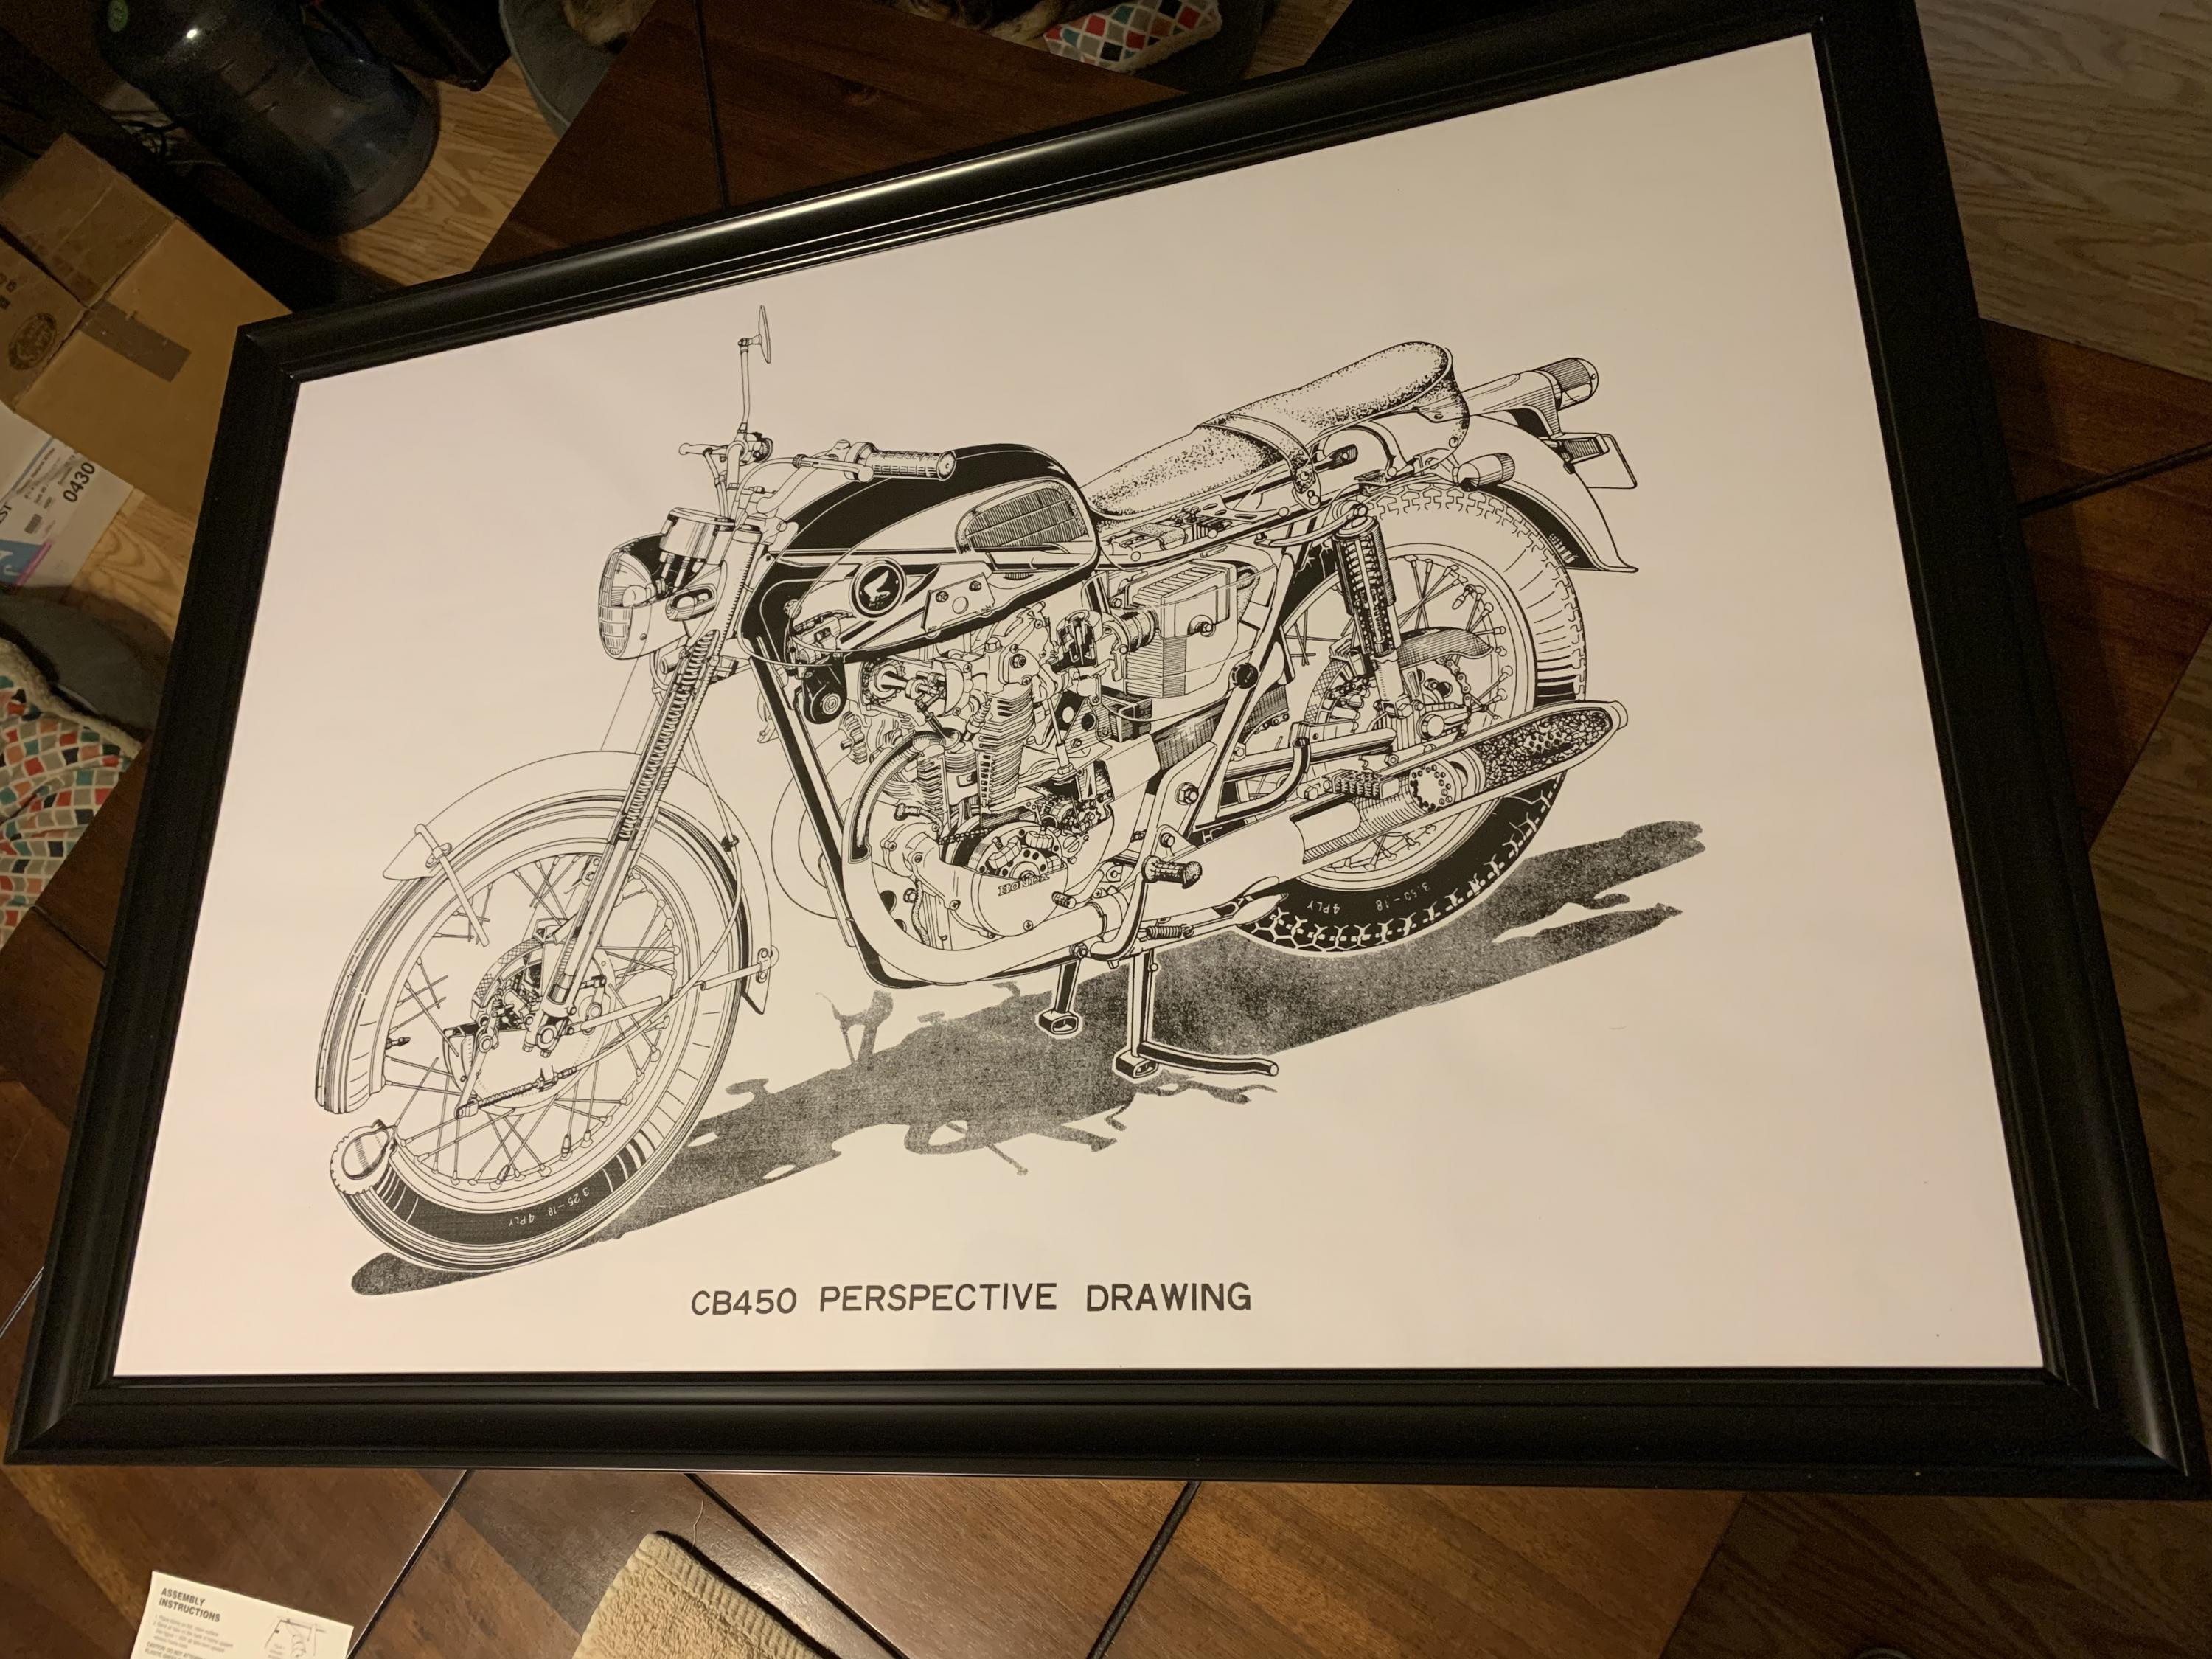 Cb450 perspective drawing poster-img_3216.jpg